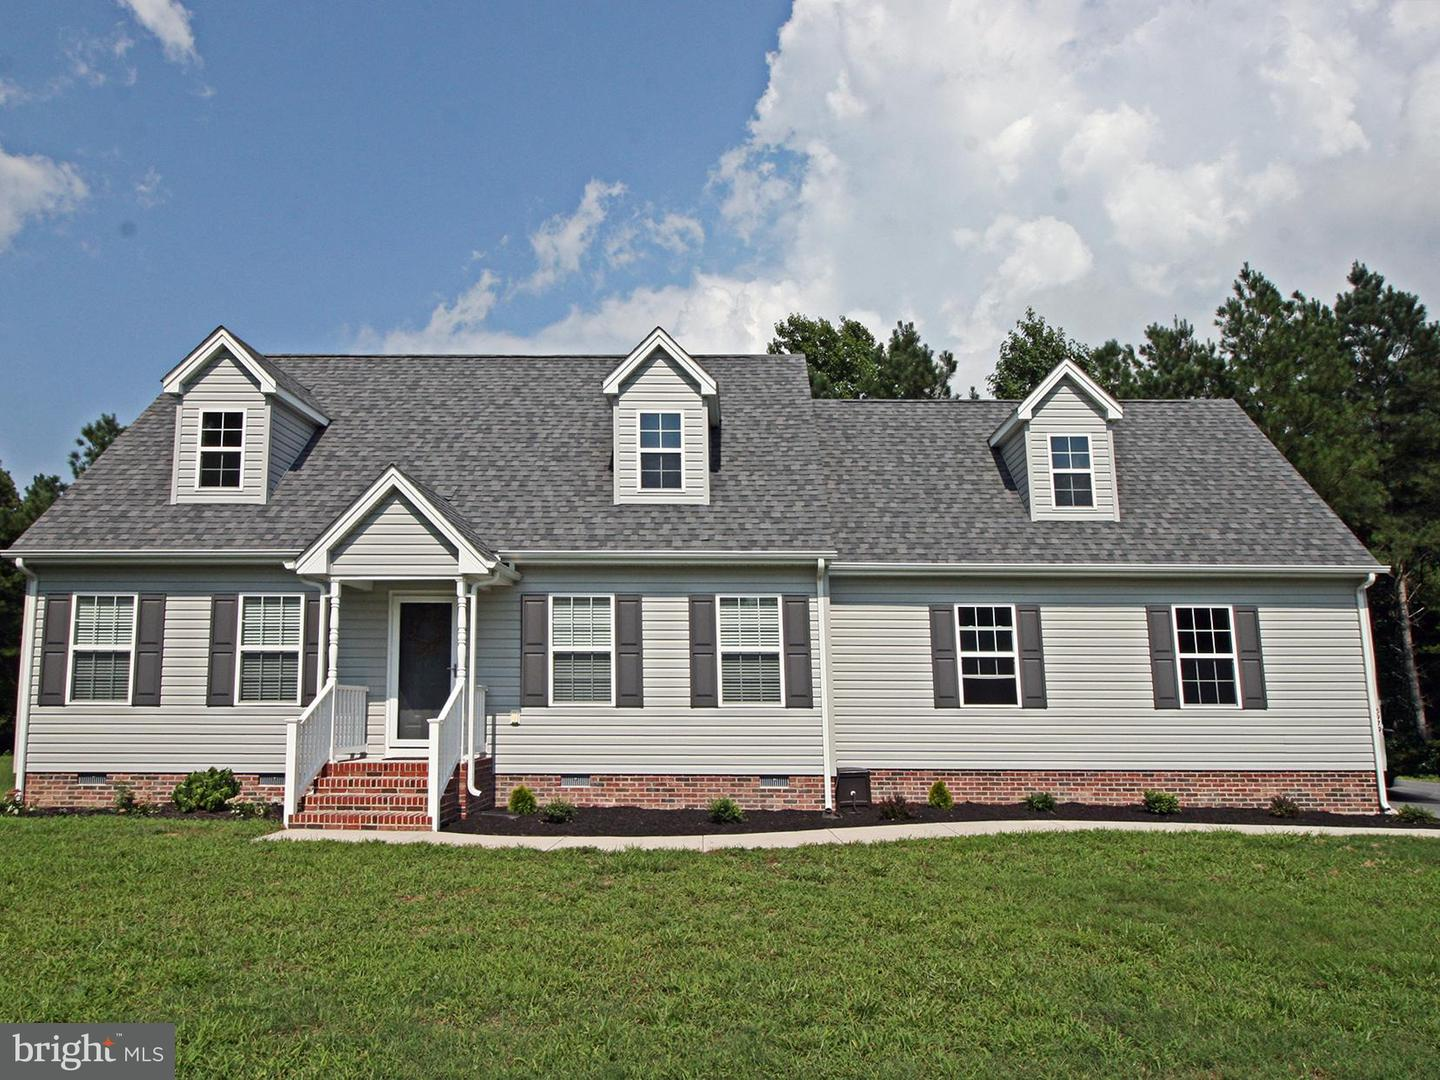 Other Residential for Sale at NONE AVAILABLE, 5979 Deer Creek Drive Pittsville, Maryland 21850 United States